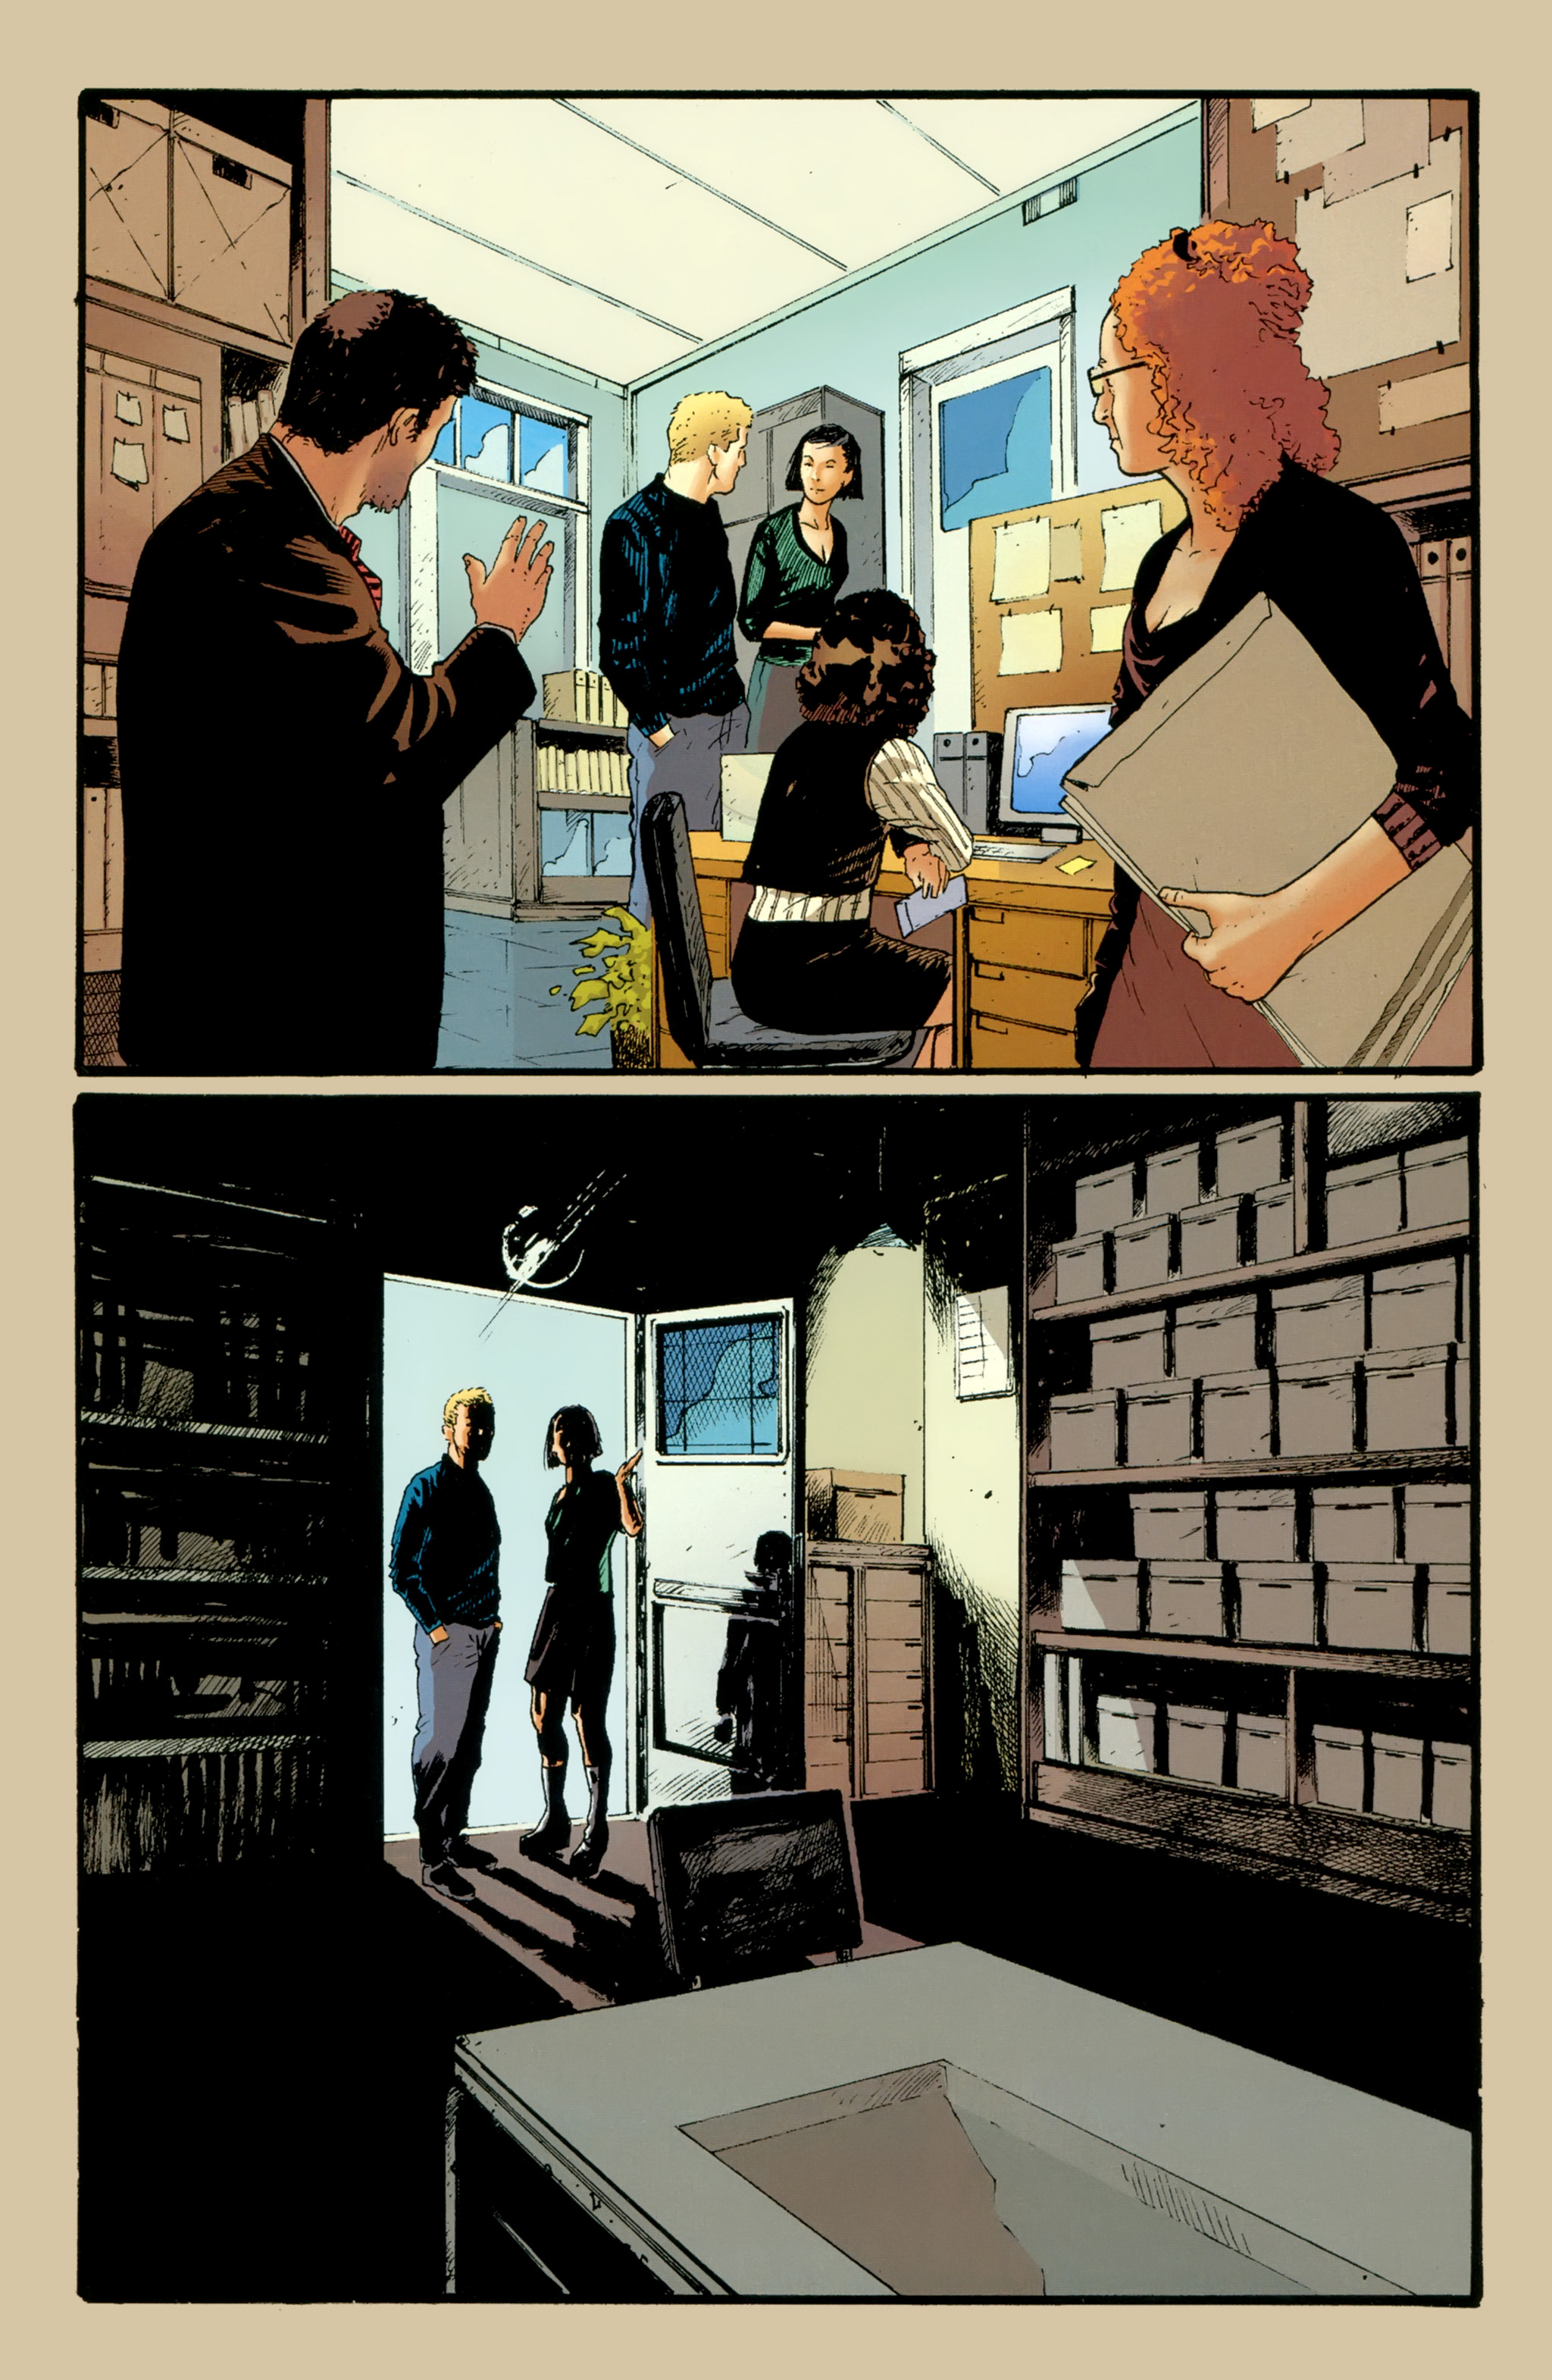 Read online The Girl With the Dragon Tattoo comic -  Issue # TPB 2 - 27